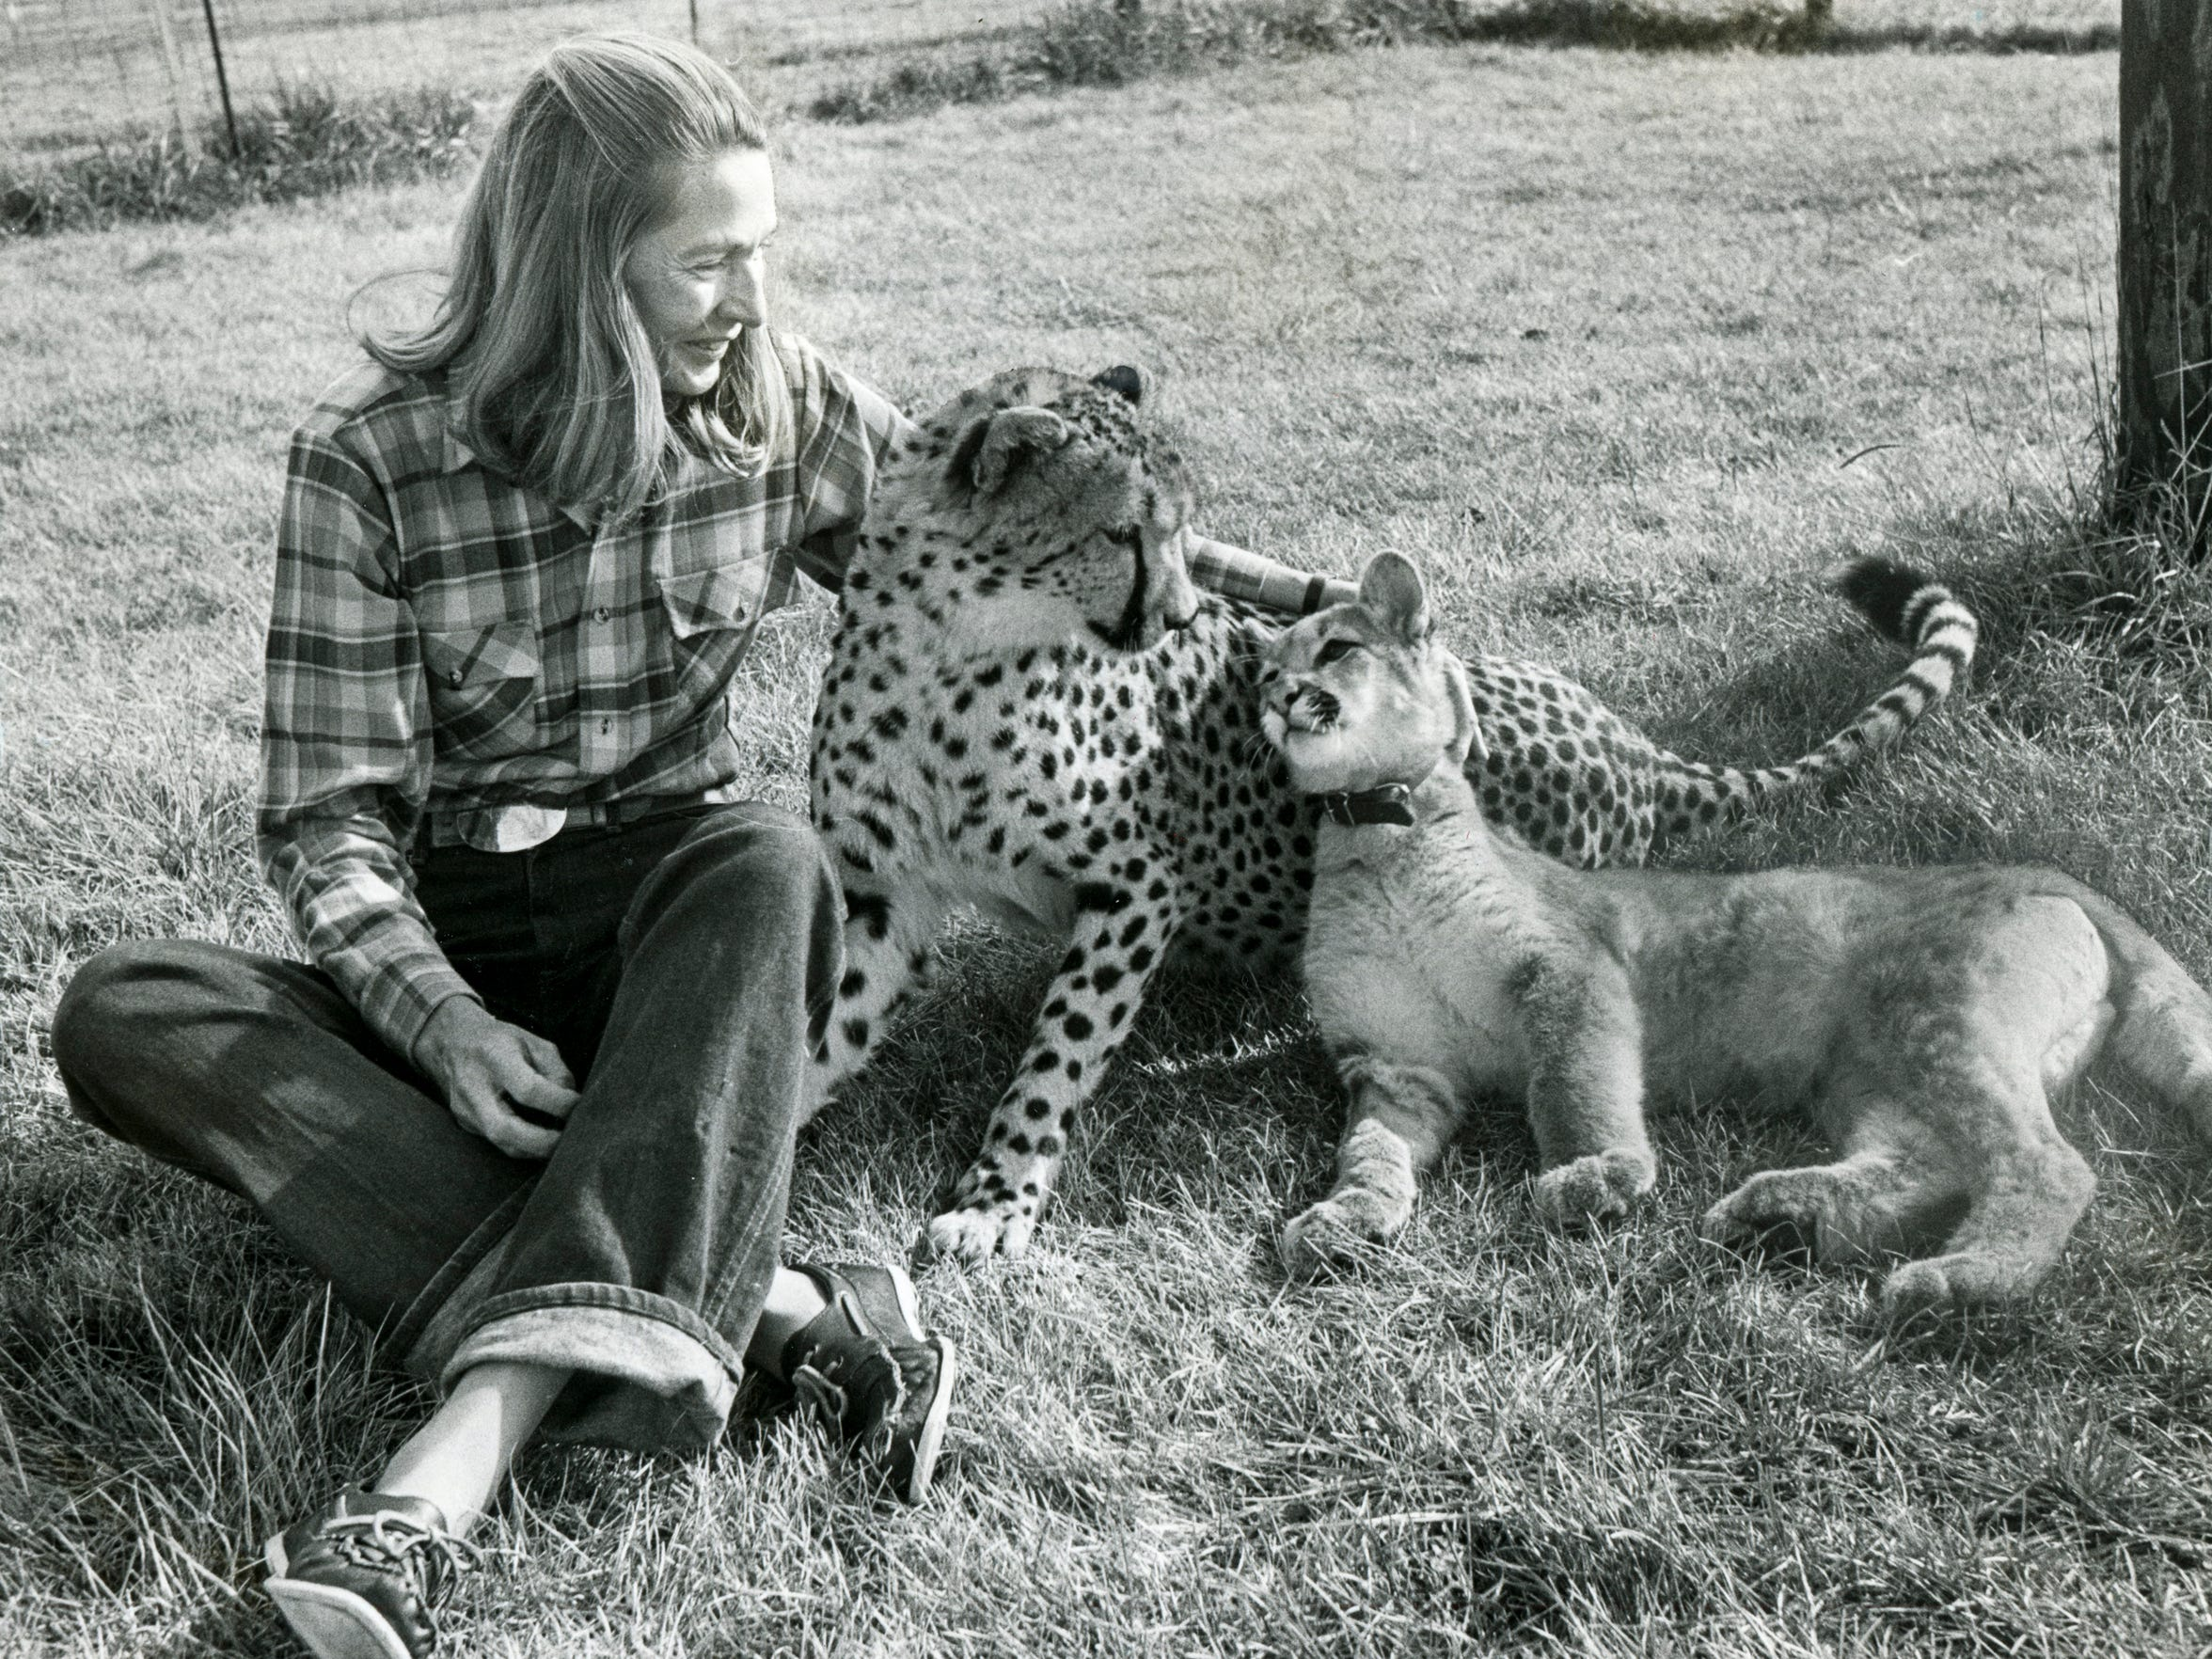 Cathryn Hilker looks after her 20-month-old cheetah, Angel, with the spots, and 6-month-old, Carrie Cougar Cat, Wednesday, December 1, 1982.